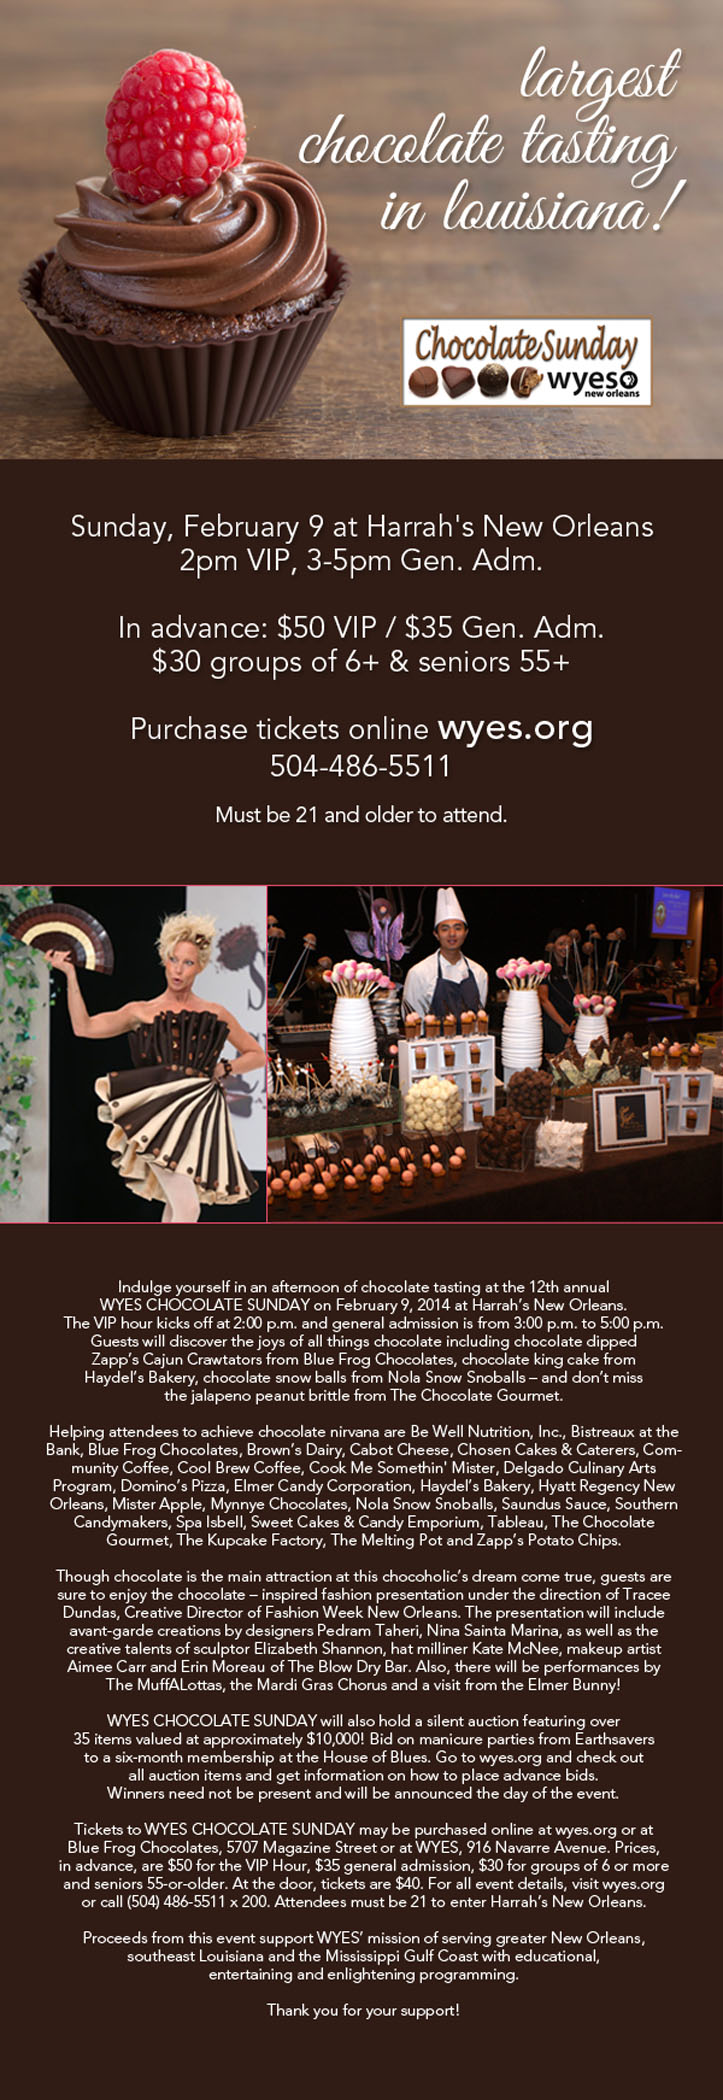 870c8e9976d4e Welcome to LaFete News The Best of New Orleans - Everyday Frank ...